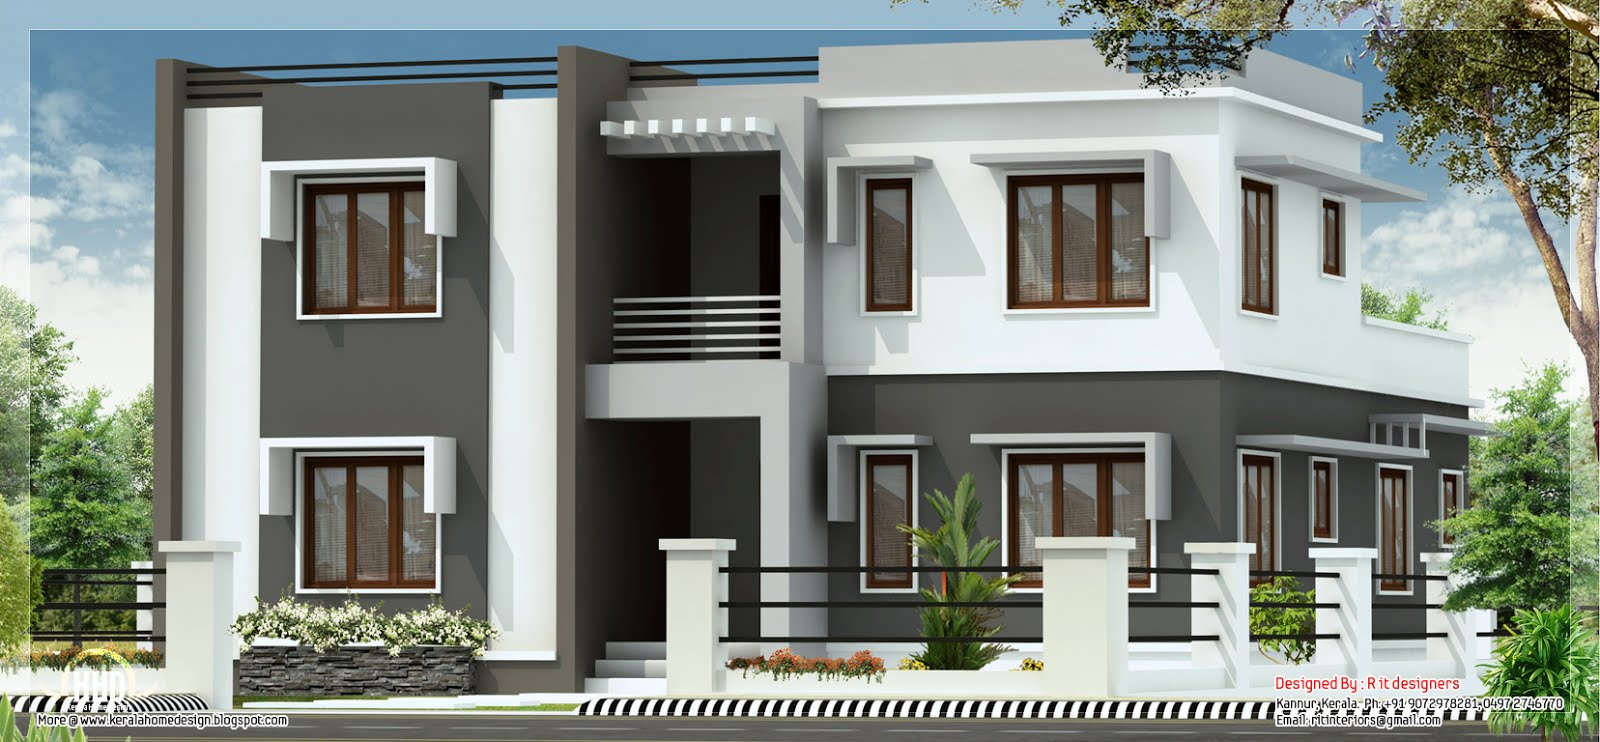 Wide flat roof 3 bedroom home design kerala home design - Flat roof home designs ...